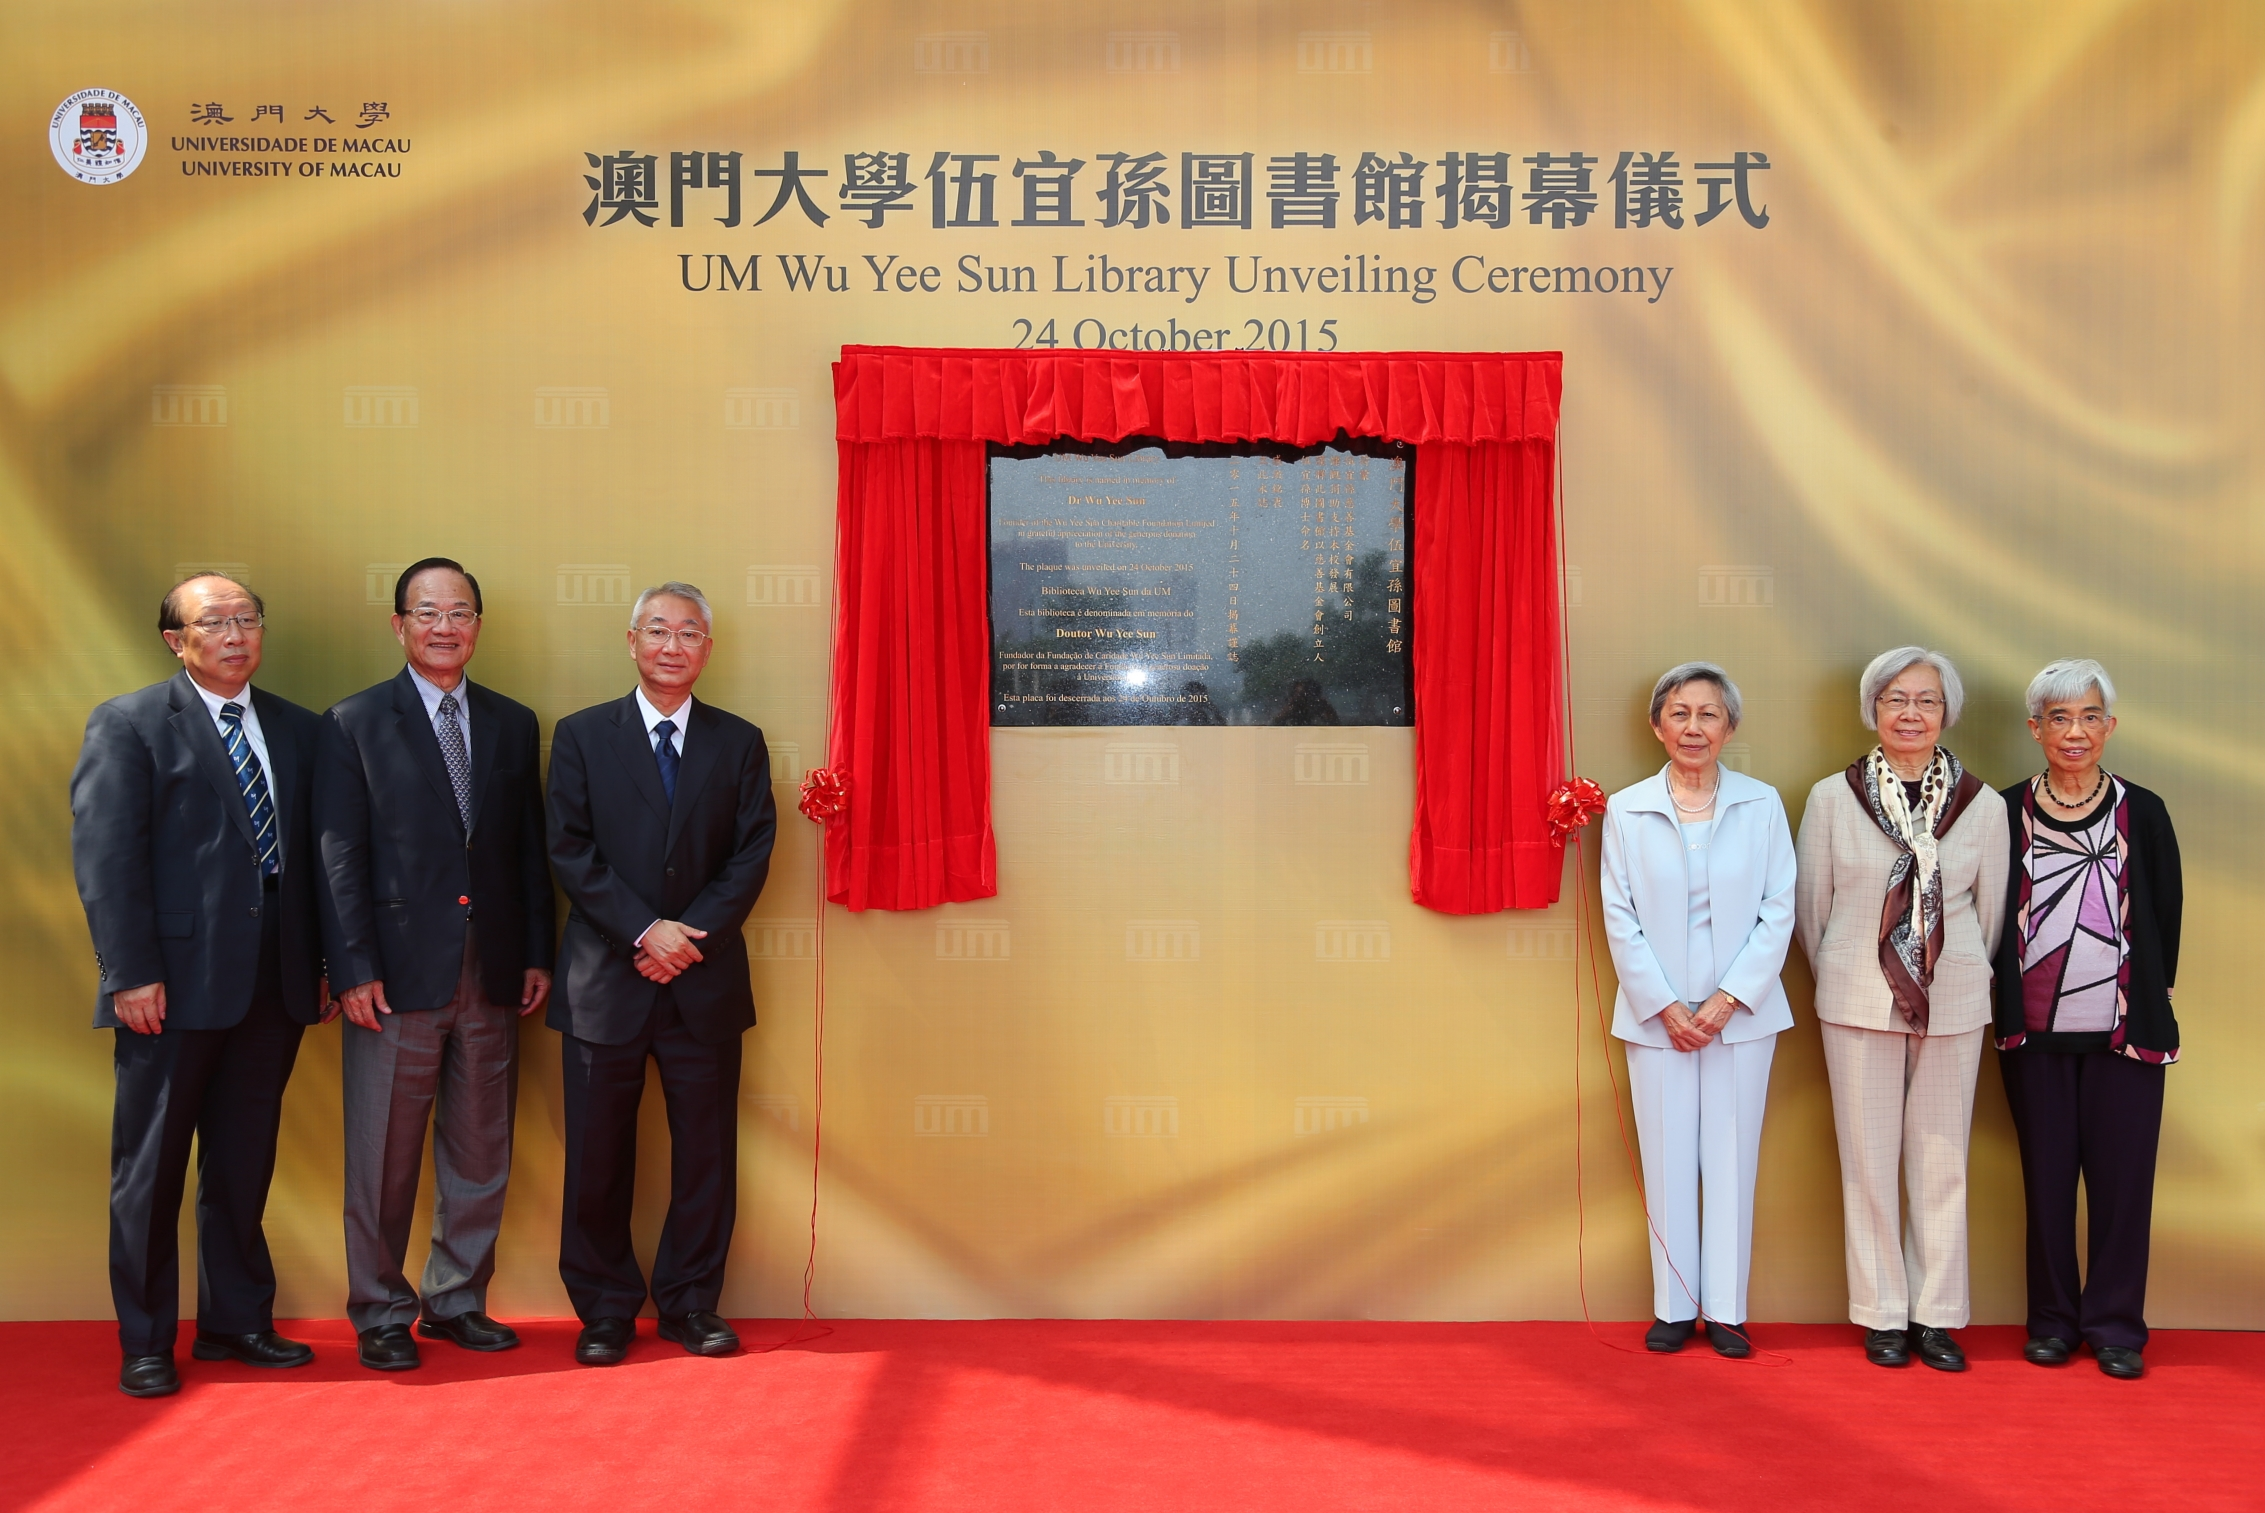 UM unveils a plaque to acknowledge a donation from the Wu Yee Sun Charitable Foundation Ltd to the UMDF